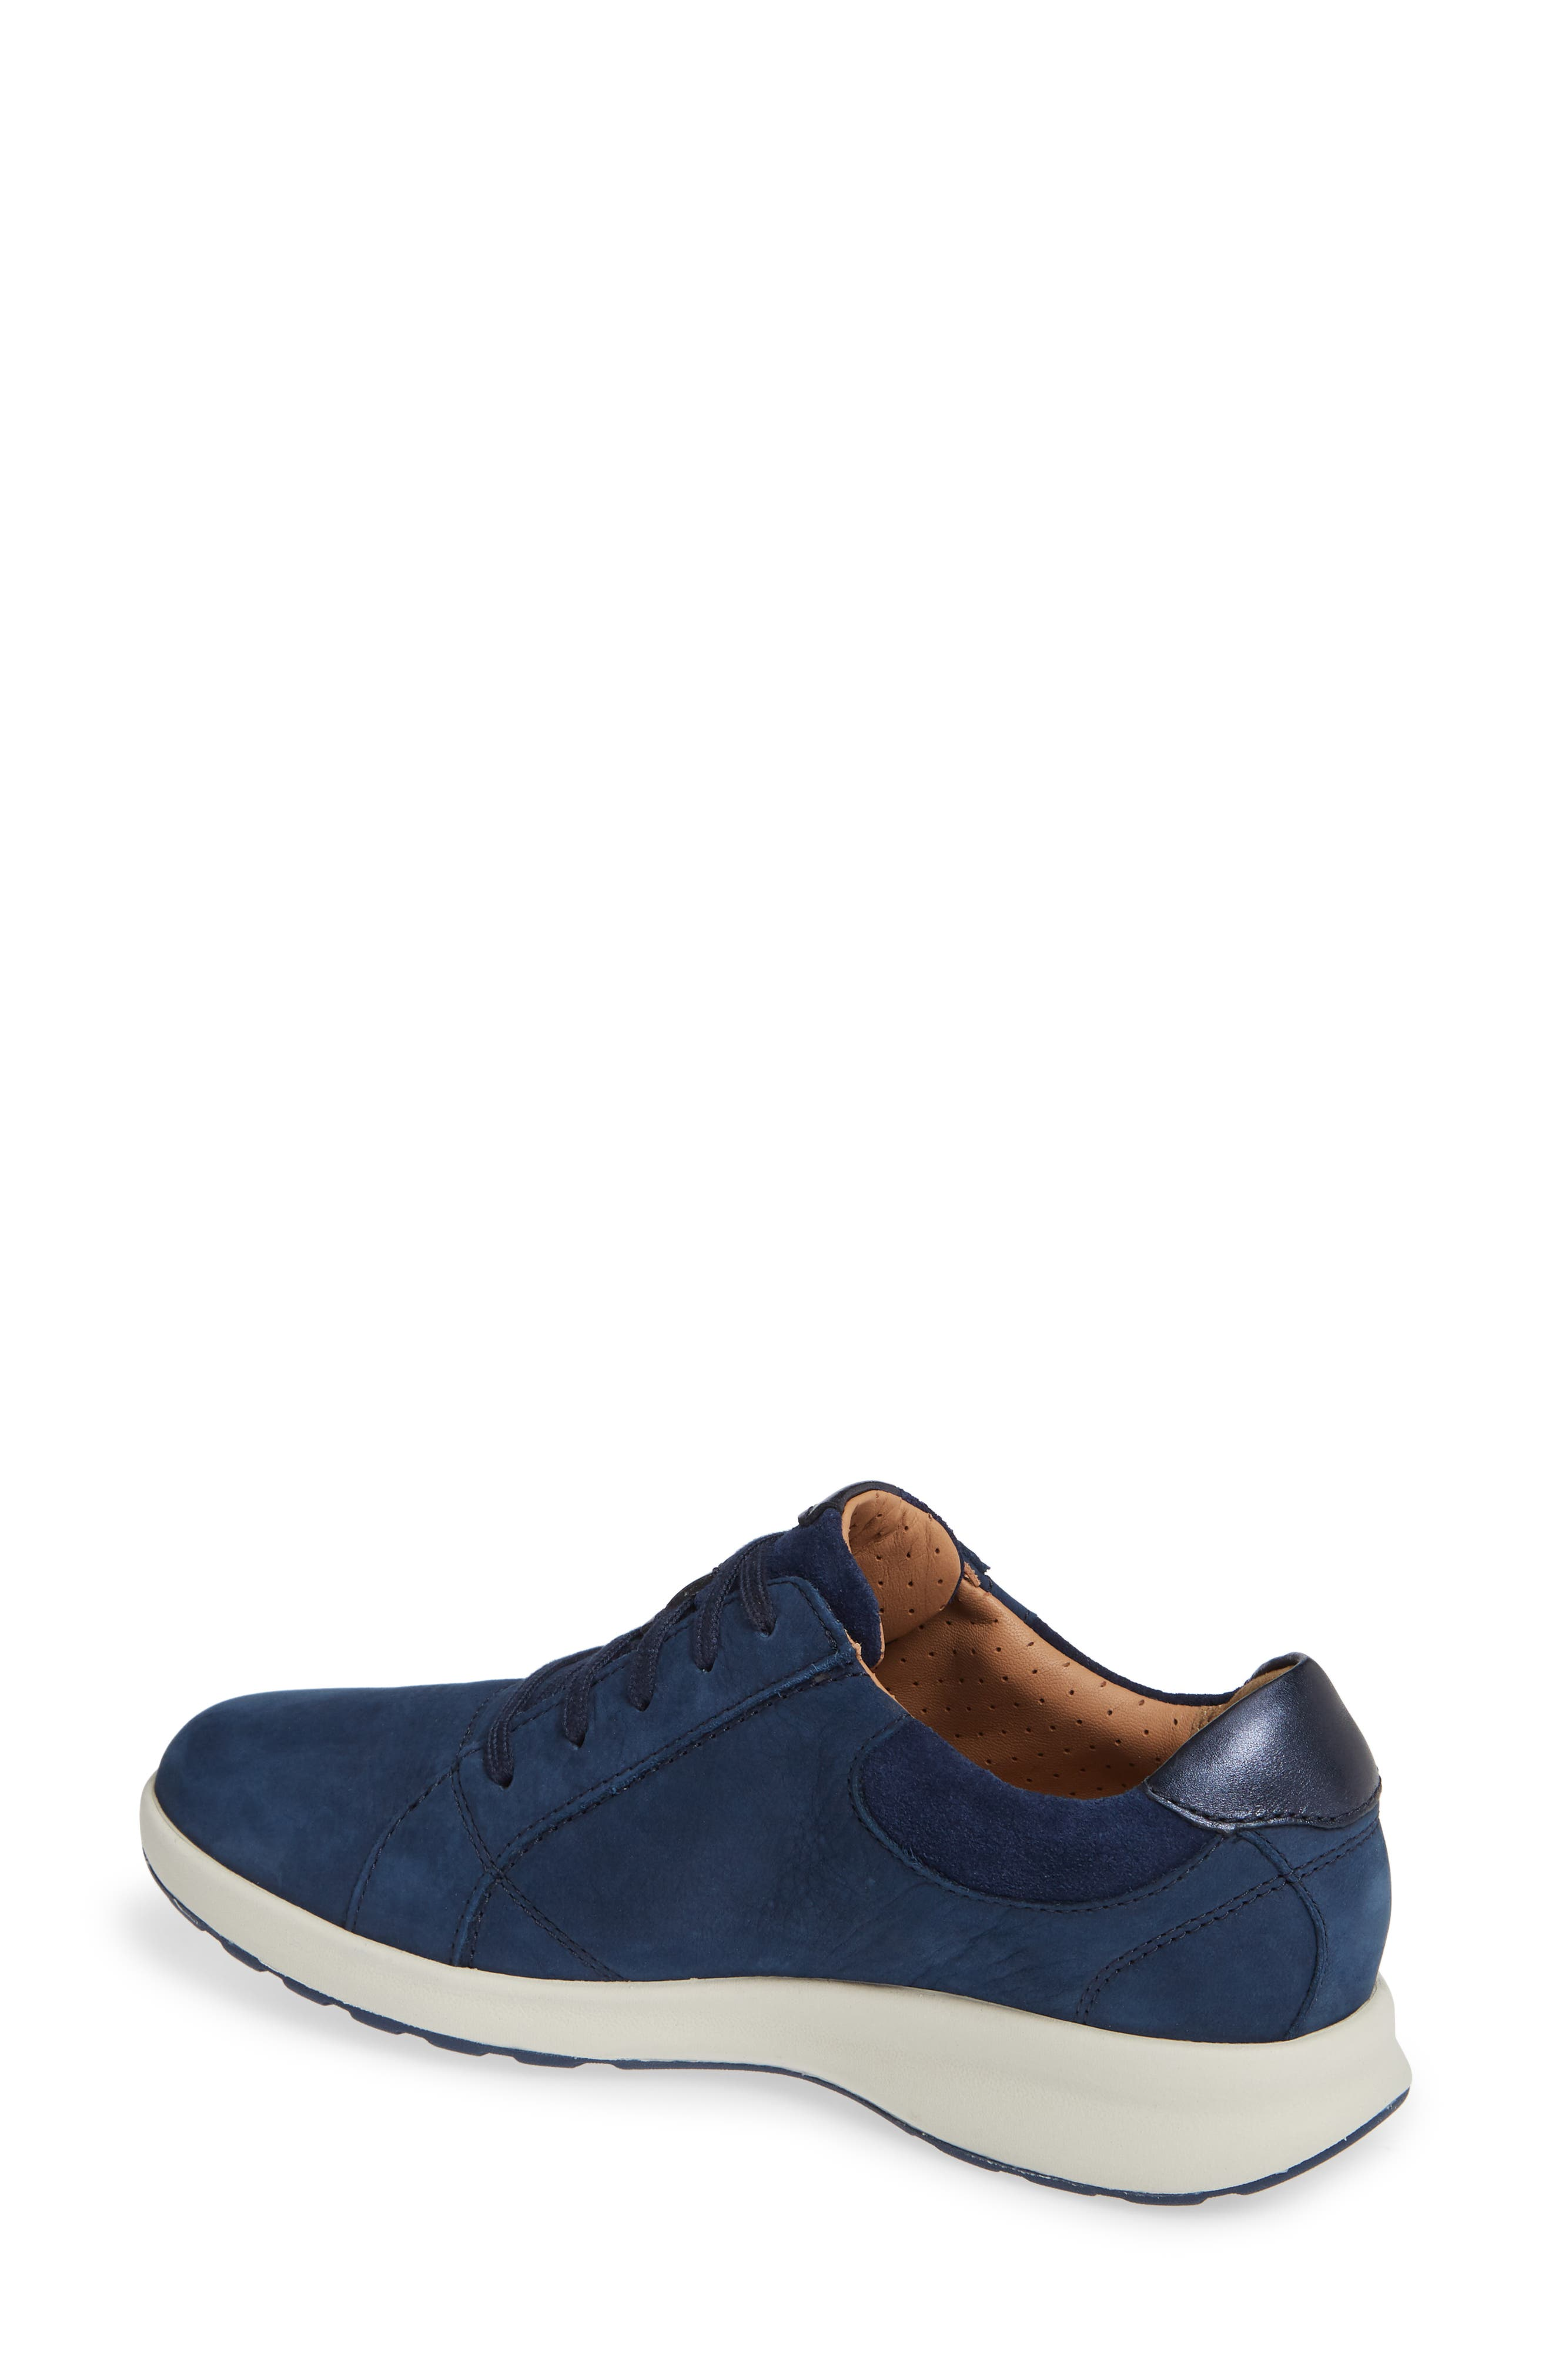 UnAdorn Lace-Up Sneaker,                             Alternate thumbnail 2, color,                             NAVY NUBUCK